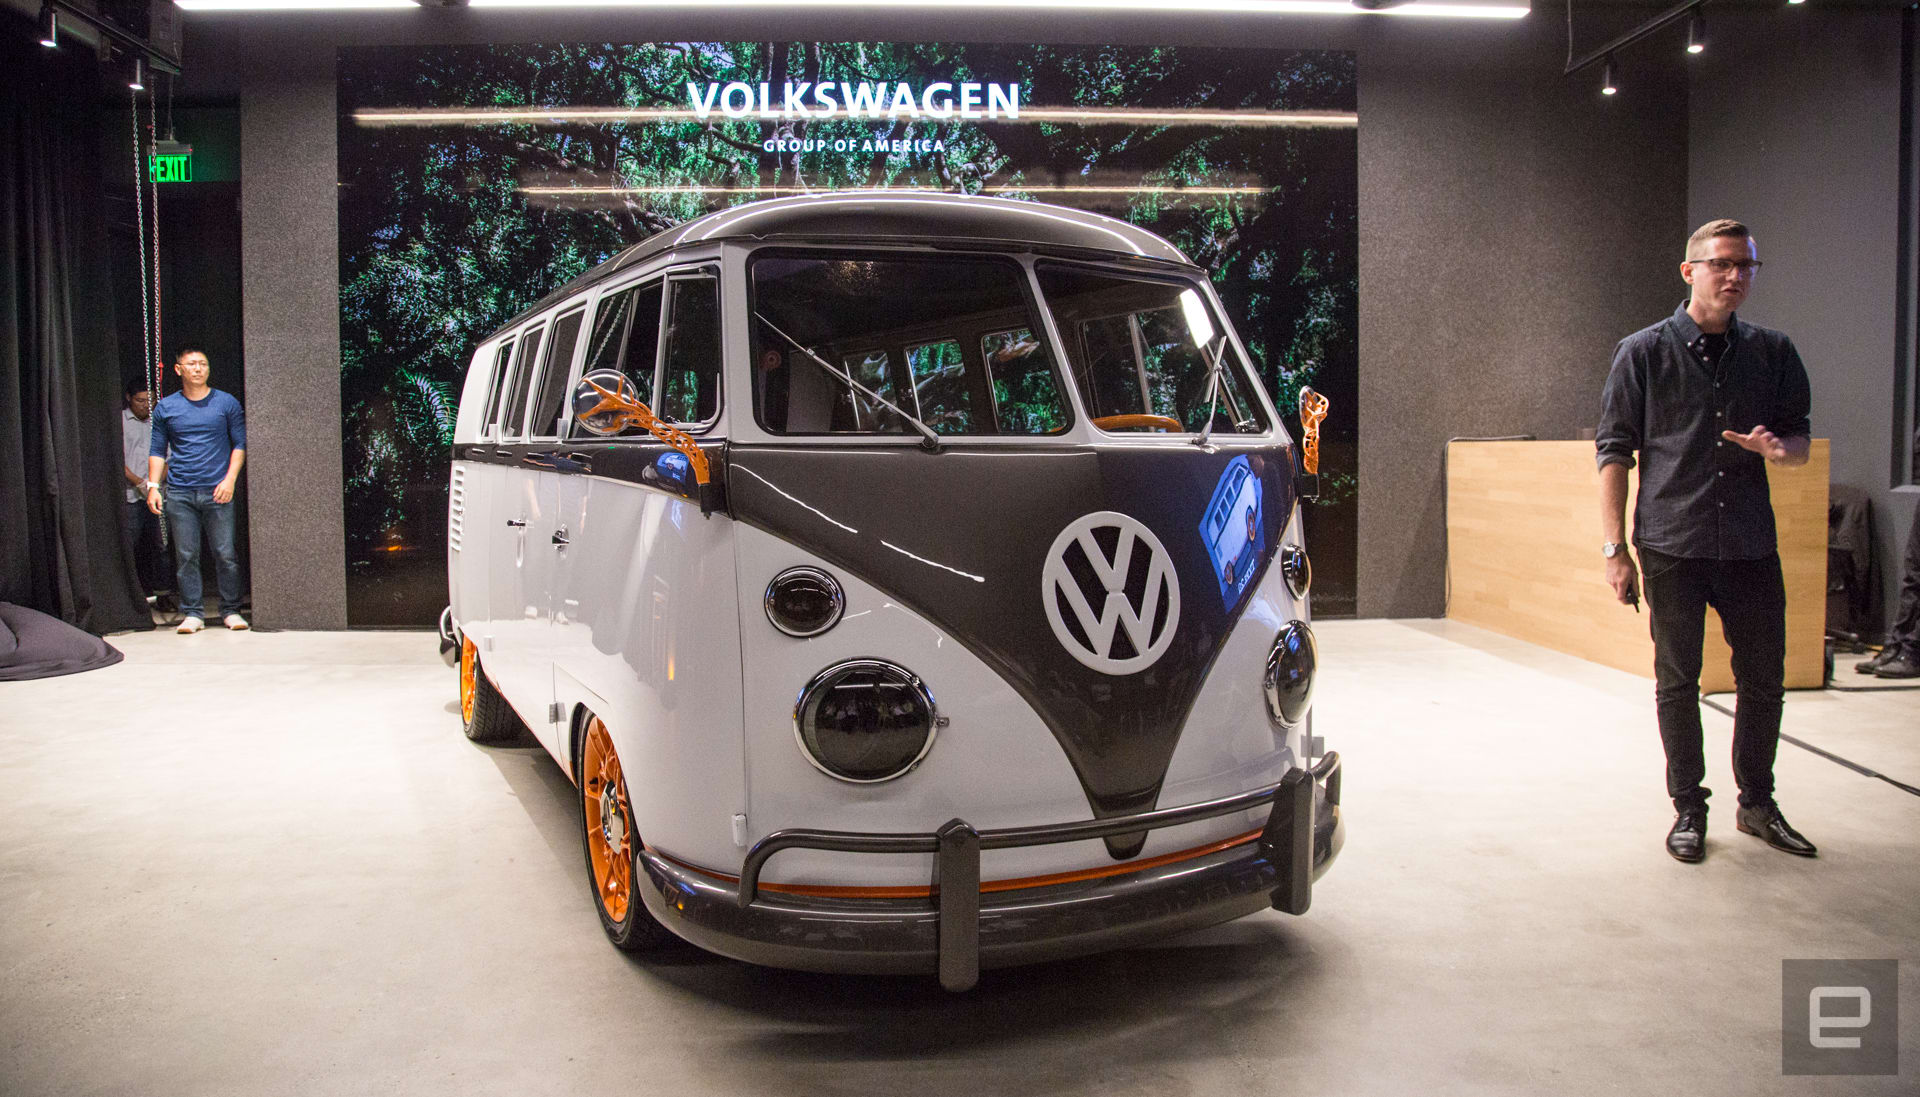 Volkswagen's Type 20 electric concept merges old-school and new